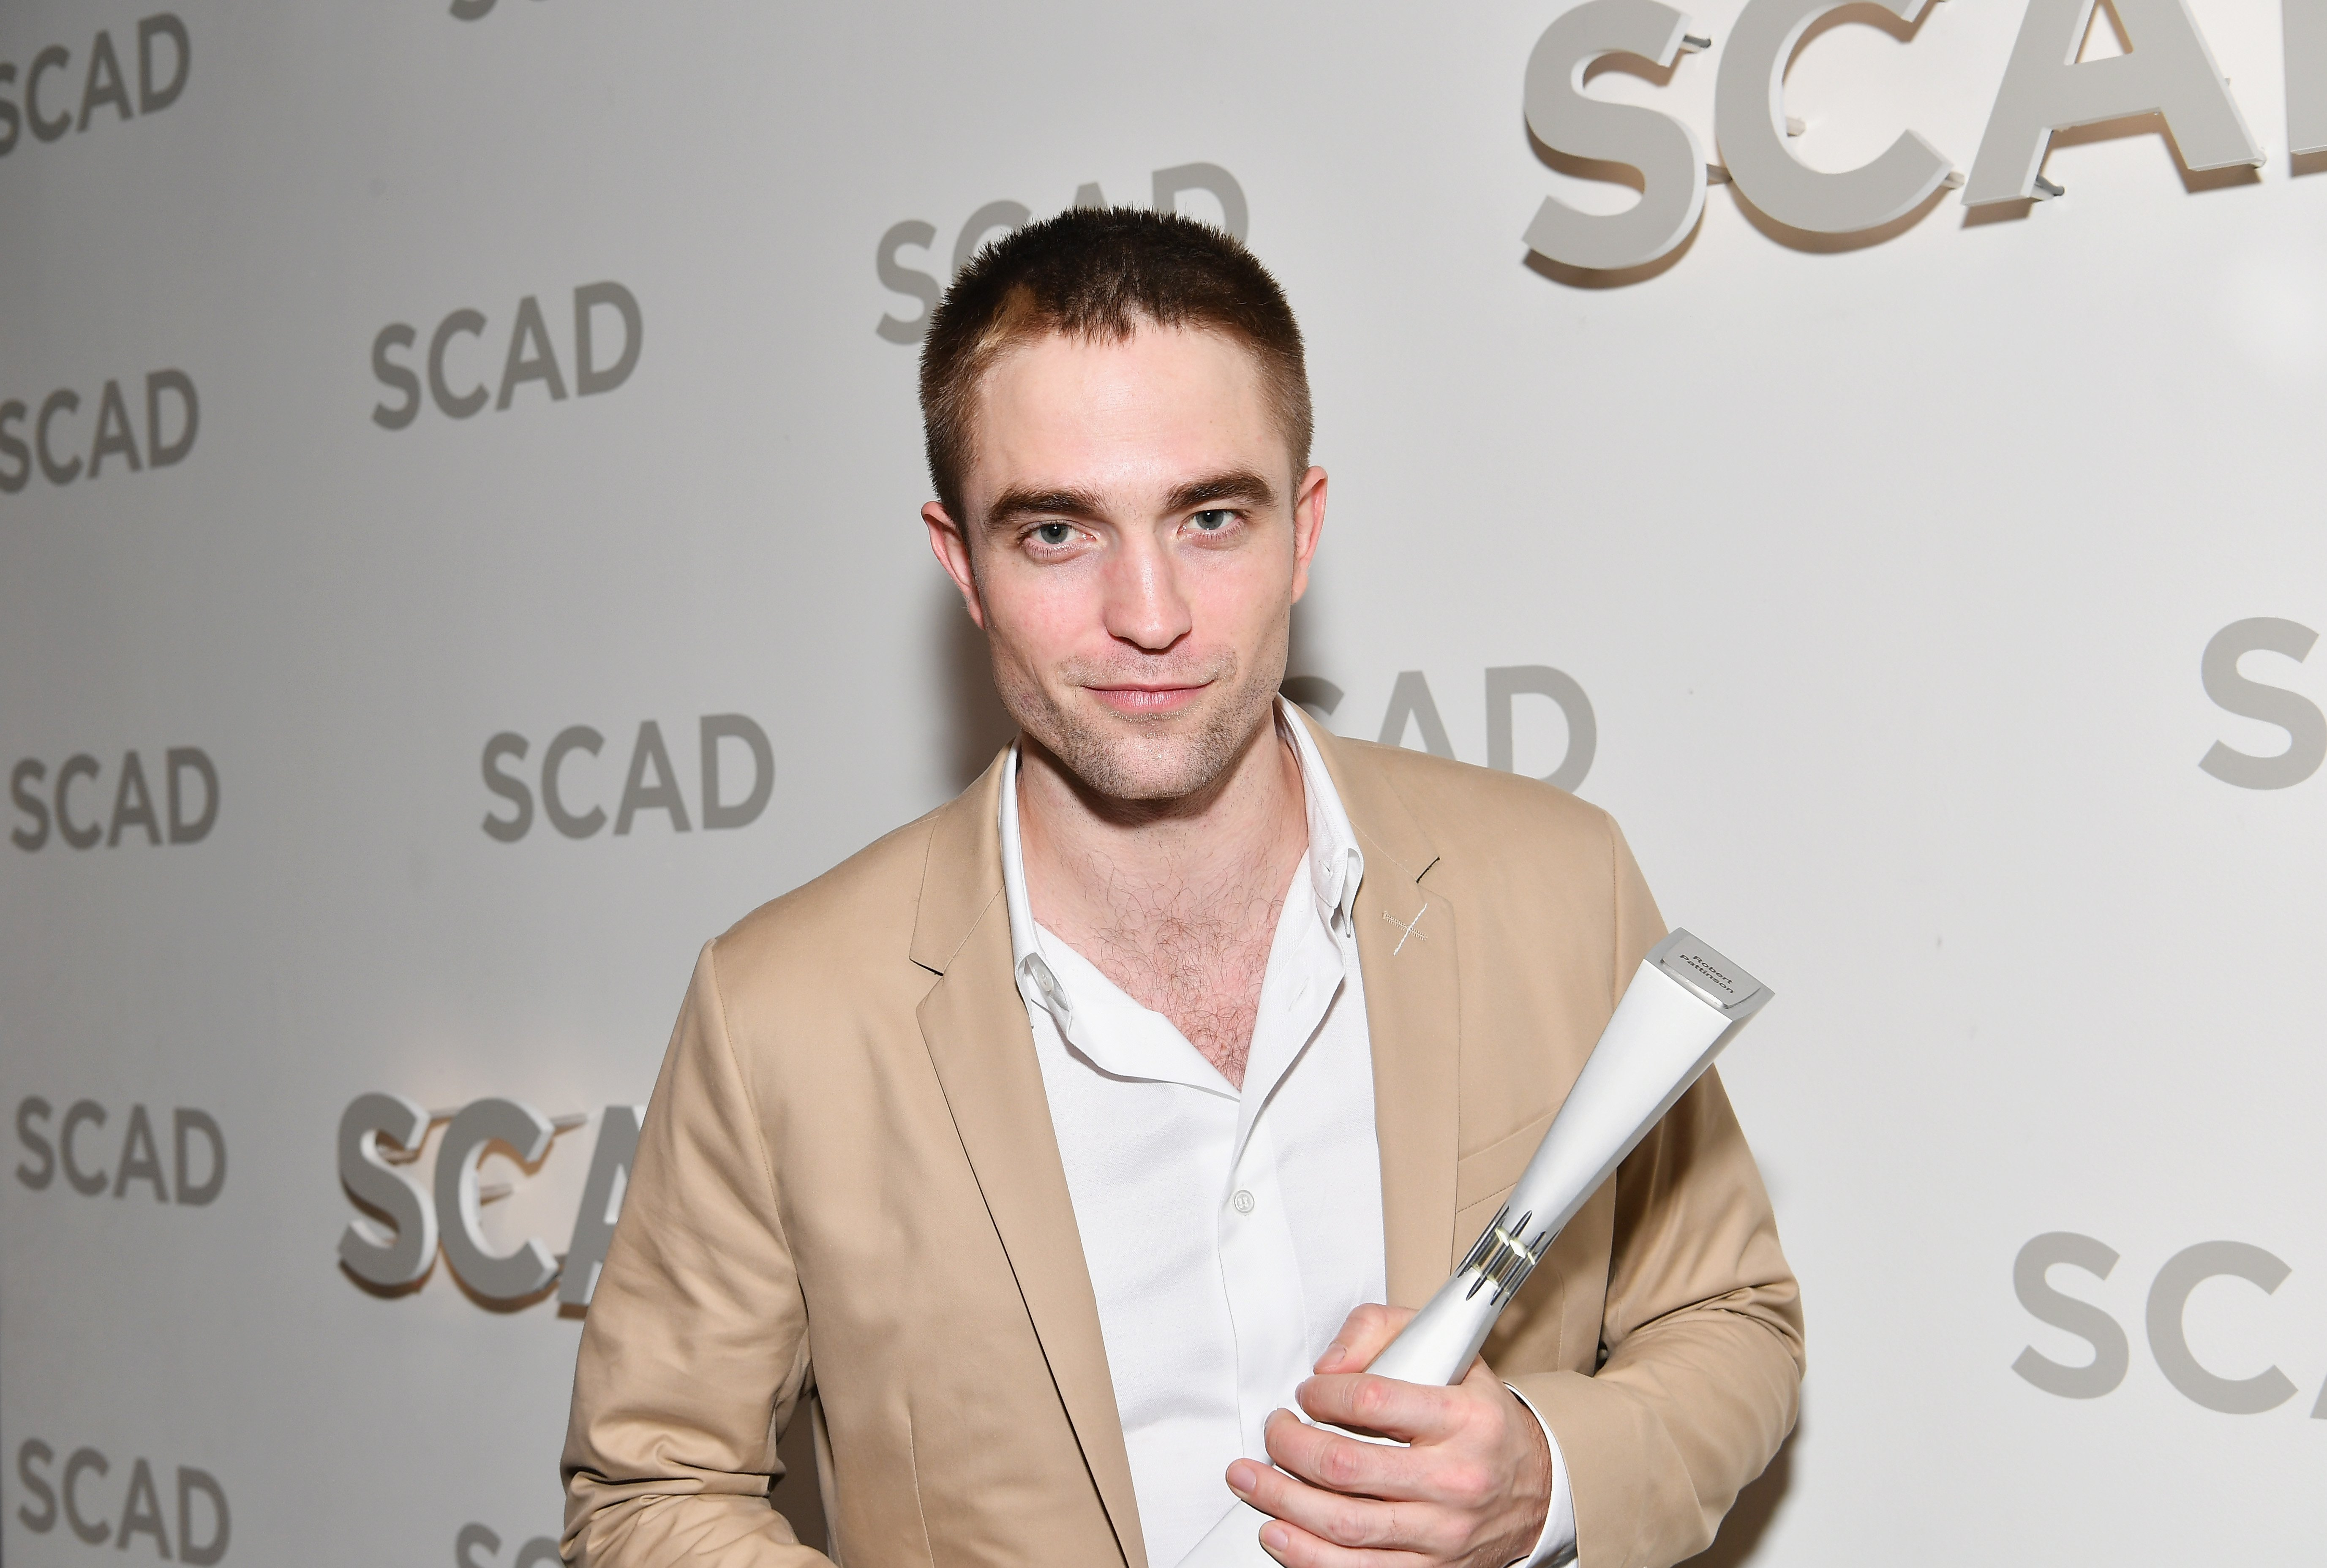 Image Credits: Getty Images / Dia Dipasupil | Actor Robert Pattinson with Maverick Award backstage at Trustees Theater during 20th Anniversary SCAD Savannah Film Festival on November 3, 2017 in Savannah, Georgia.